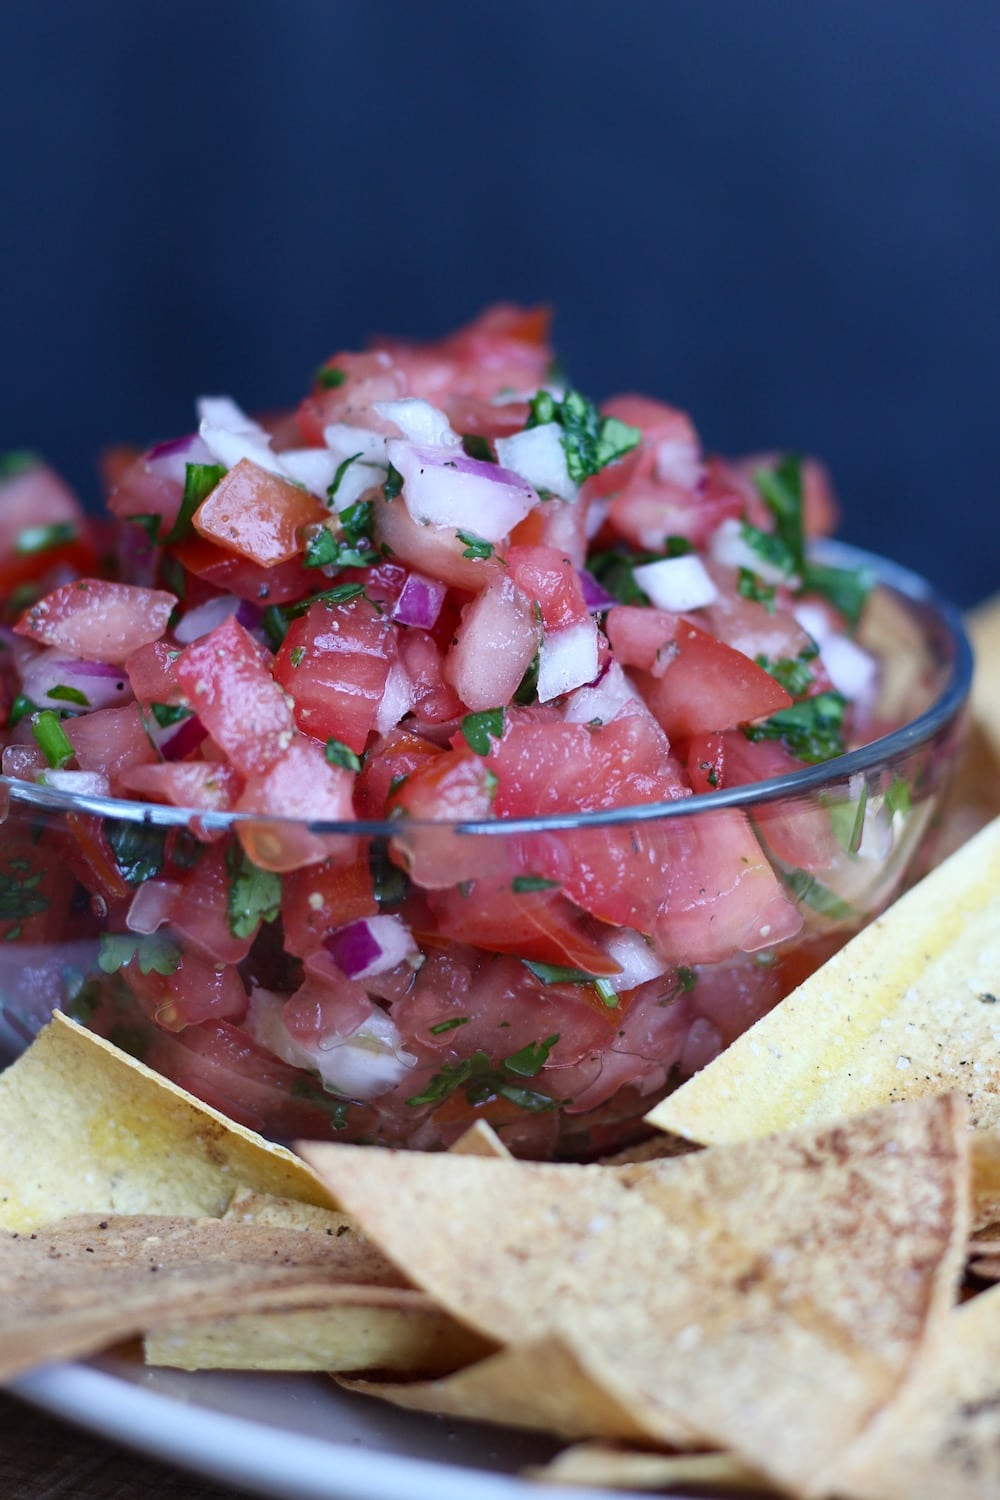 Baked chips with salsa